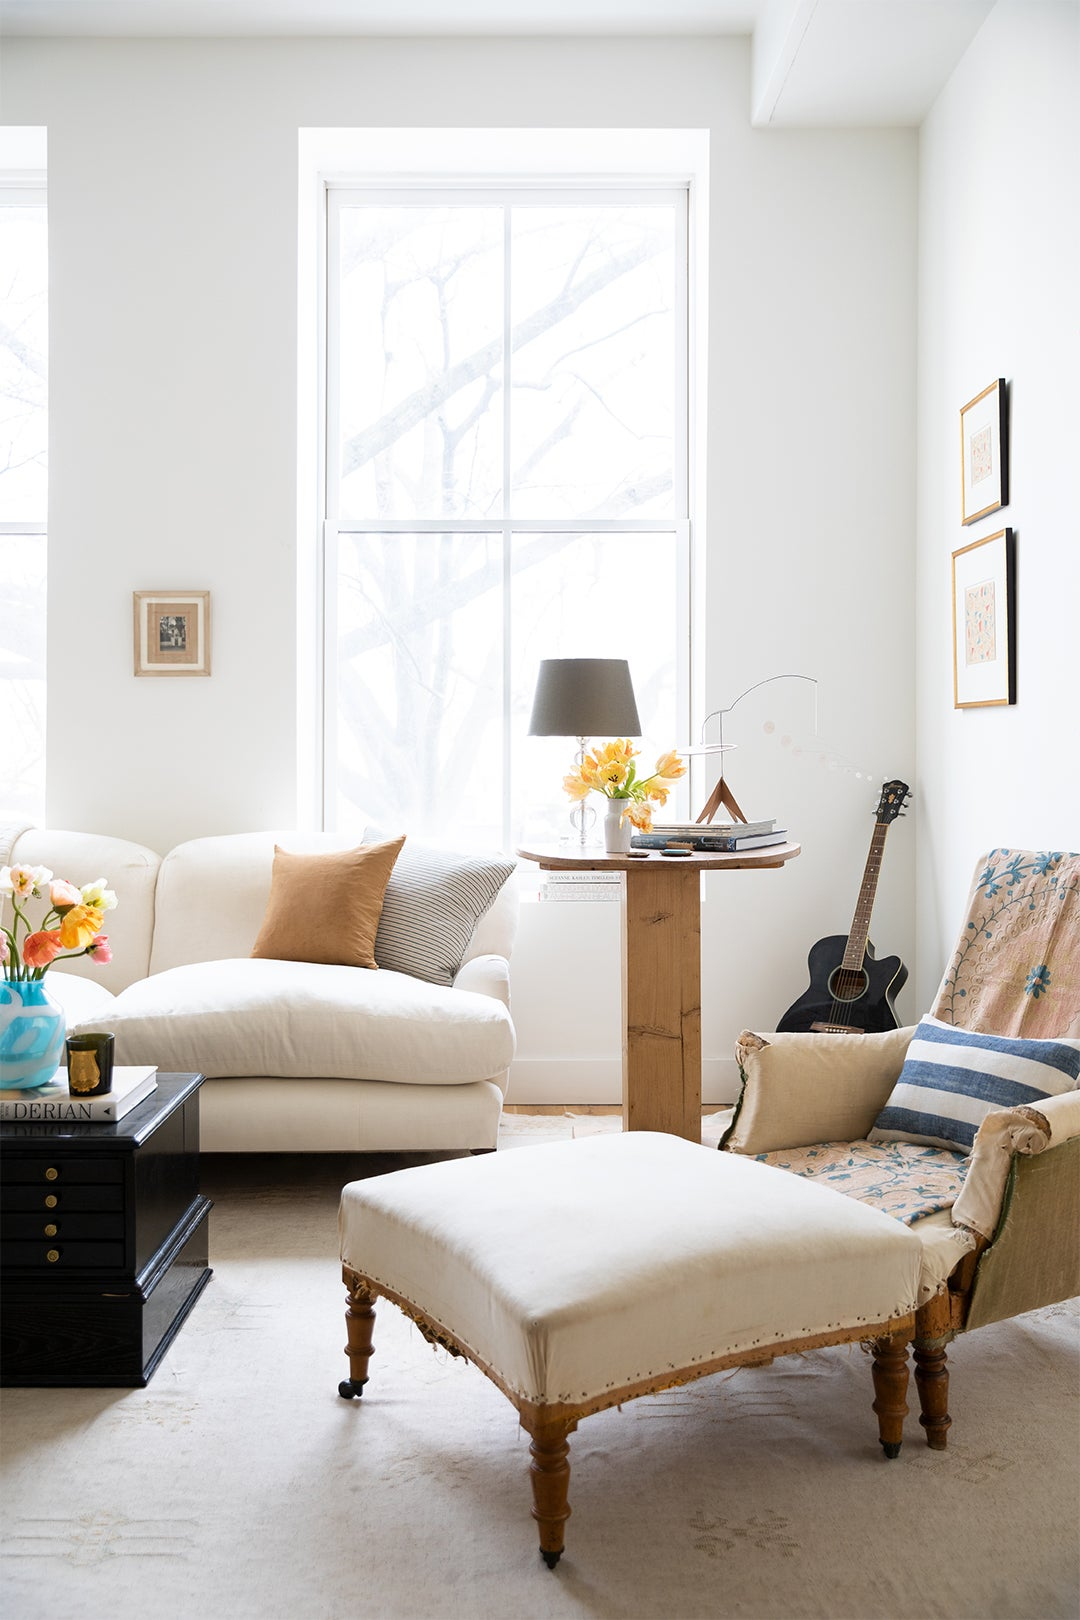 Sitting Chair With Ottoman and Coffee Table